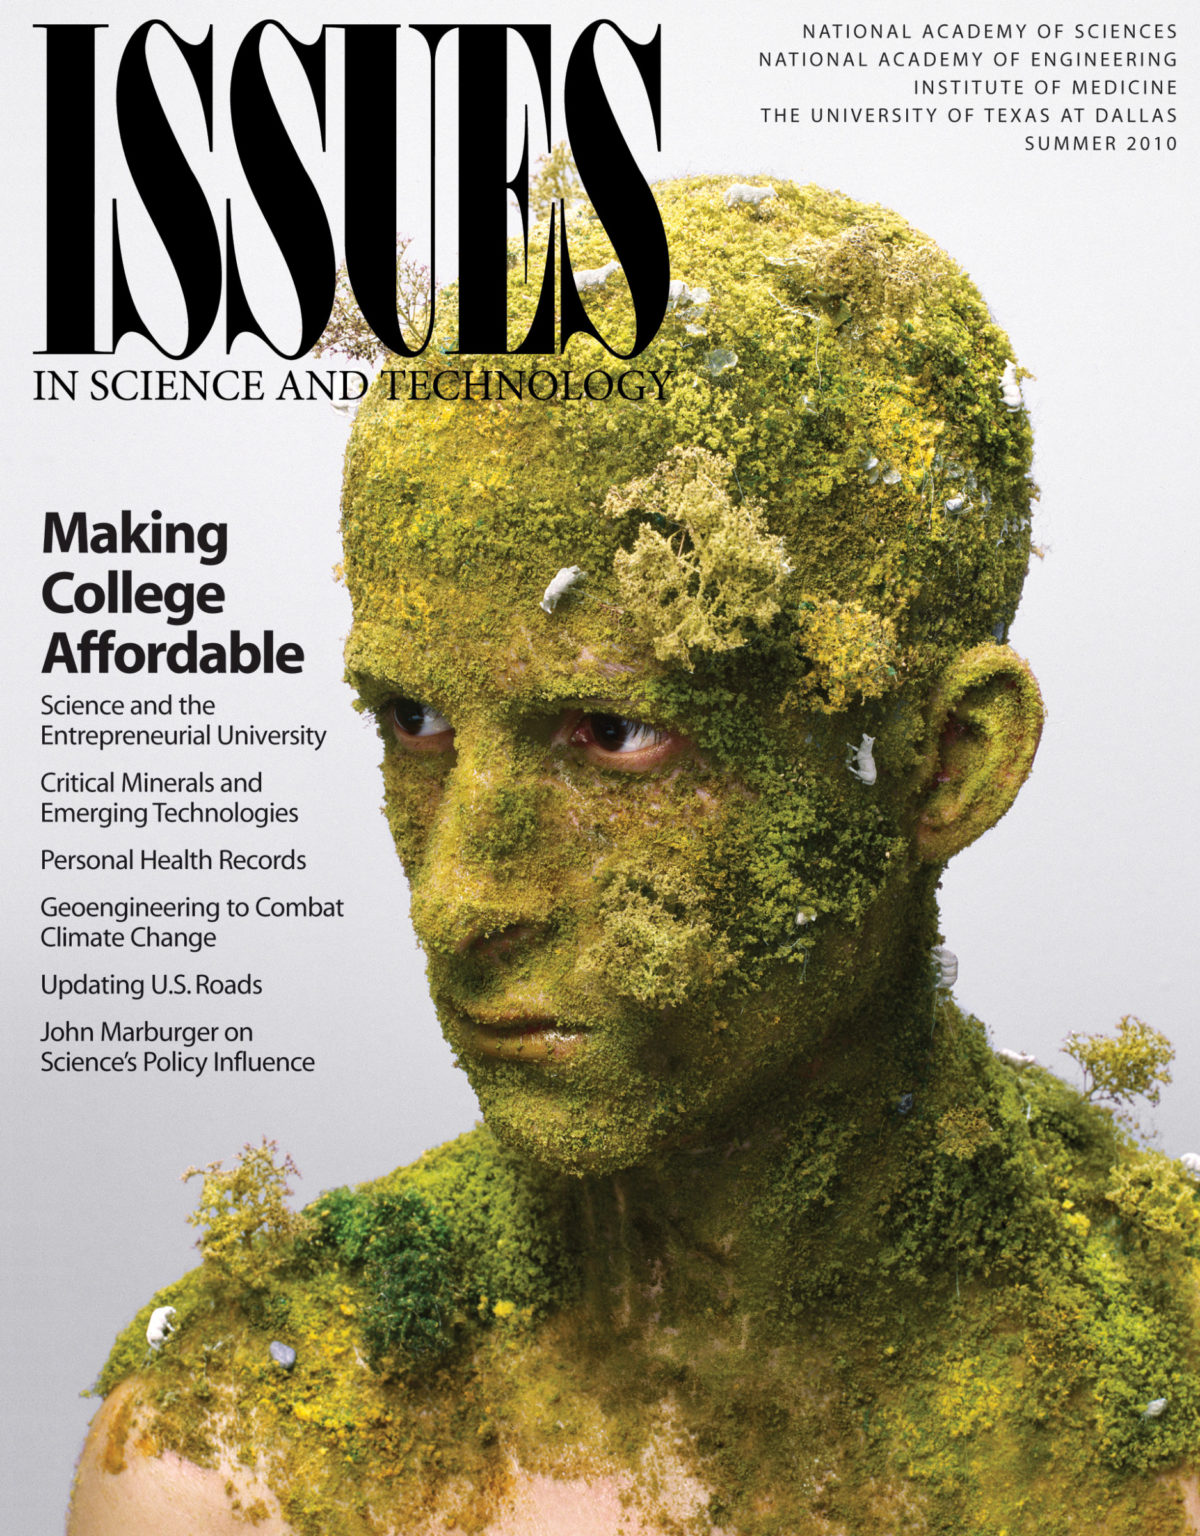 Issues Summer 2010 Front Cover Featuring a Person covered in moss